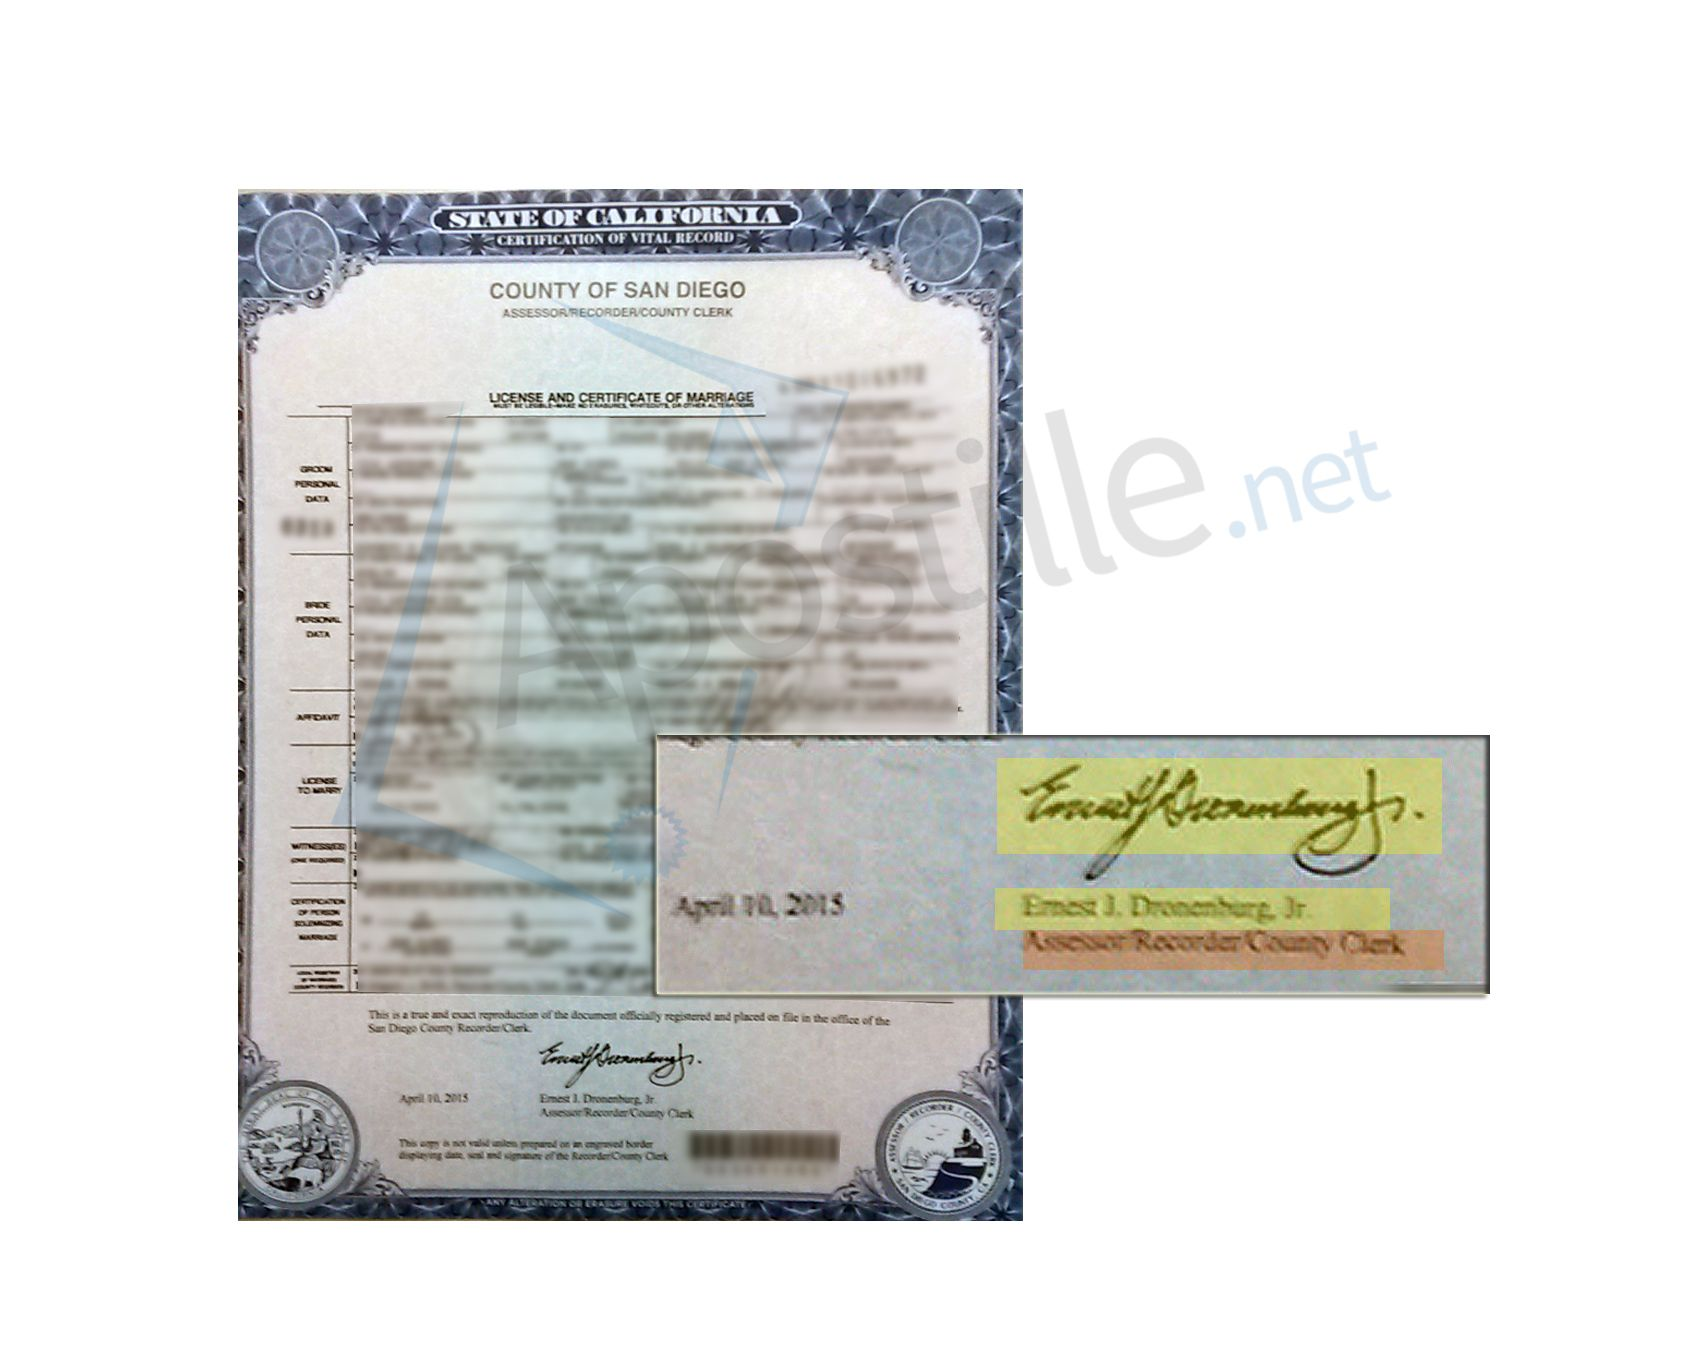 county of san diego license and certificate of marriage